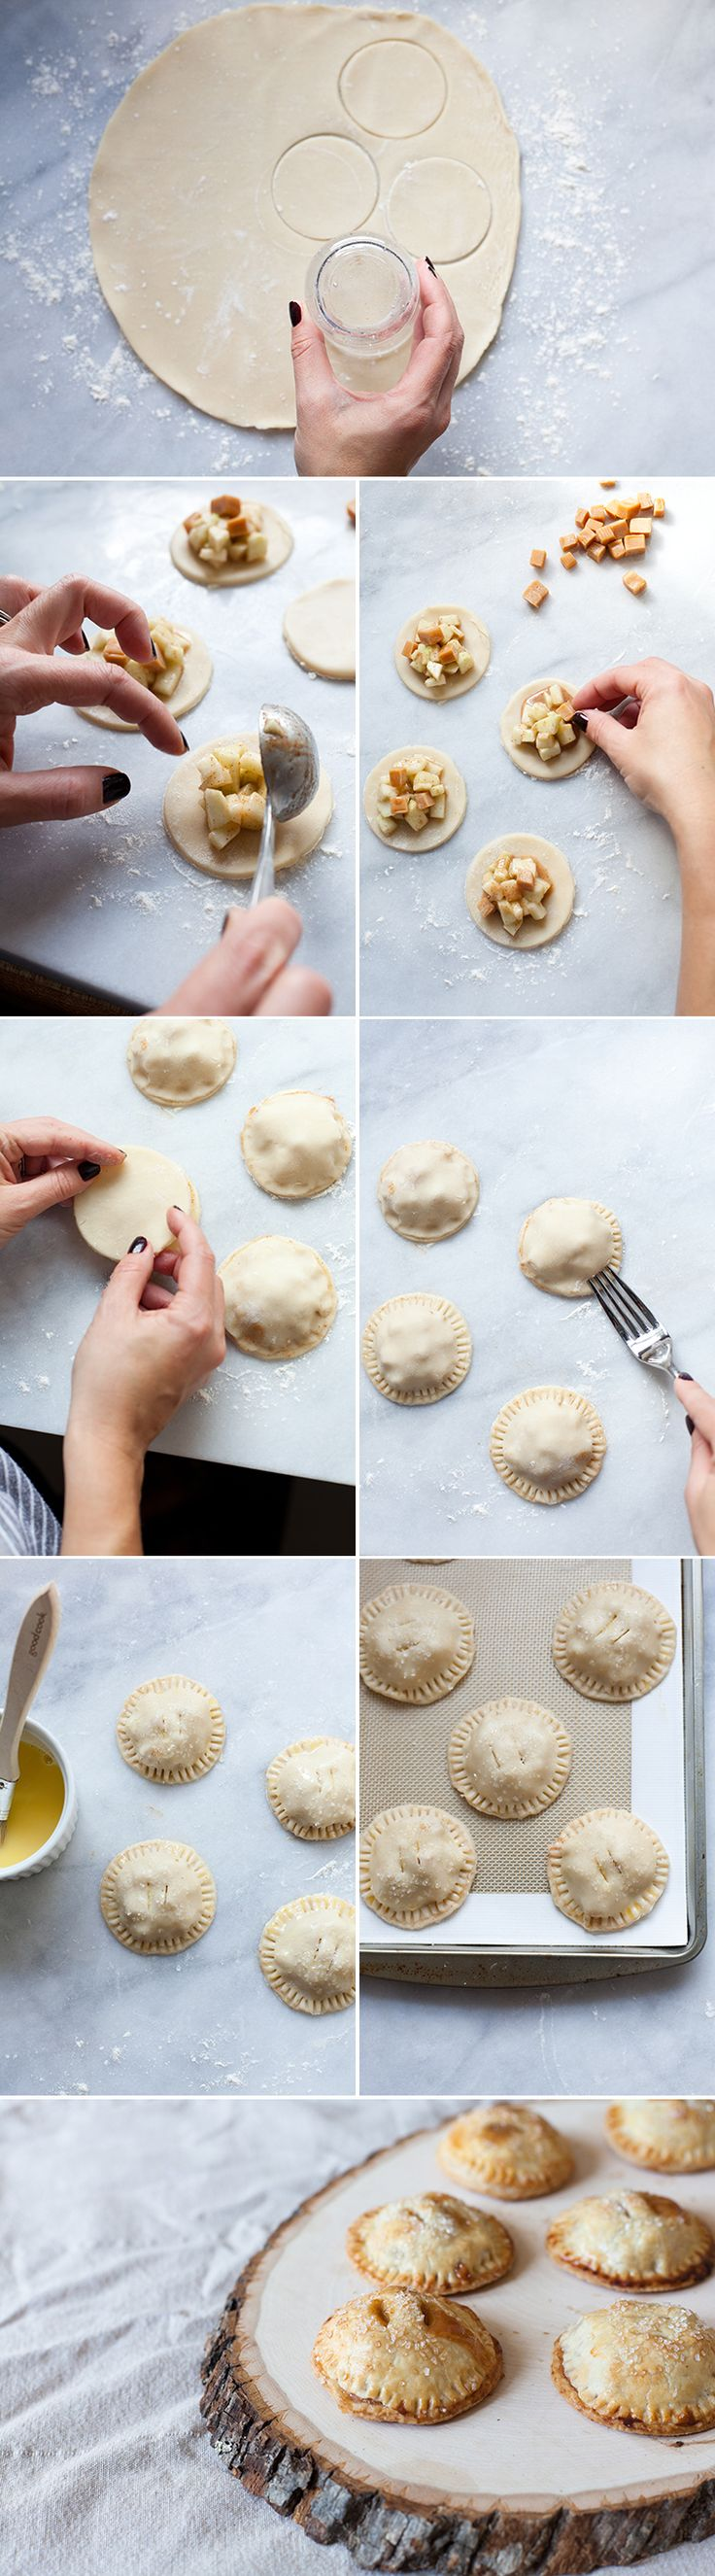 How to make mini hand pies- step by step instructions plus a recipe.